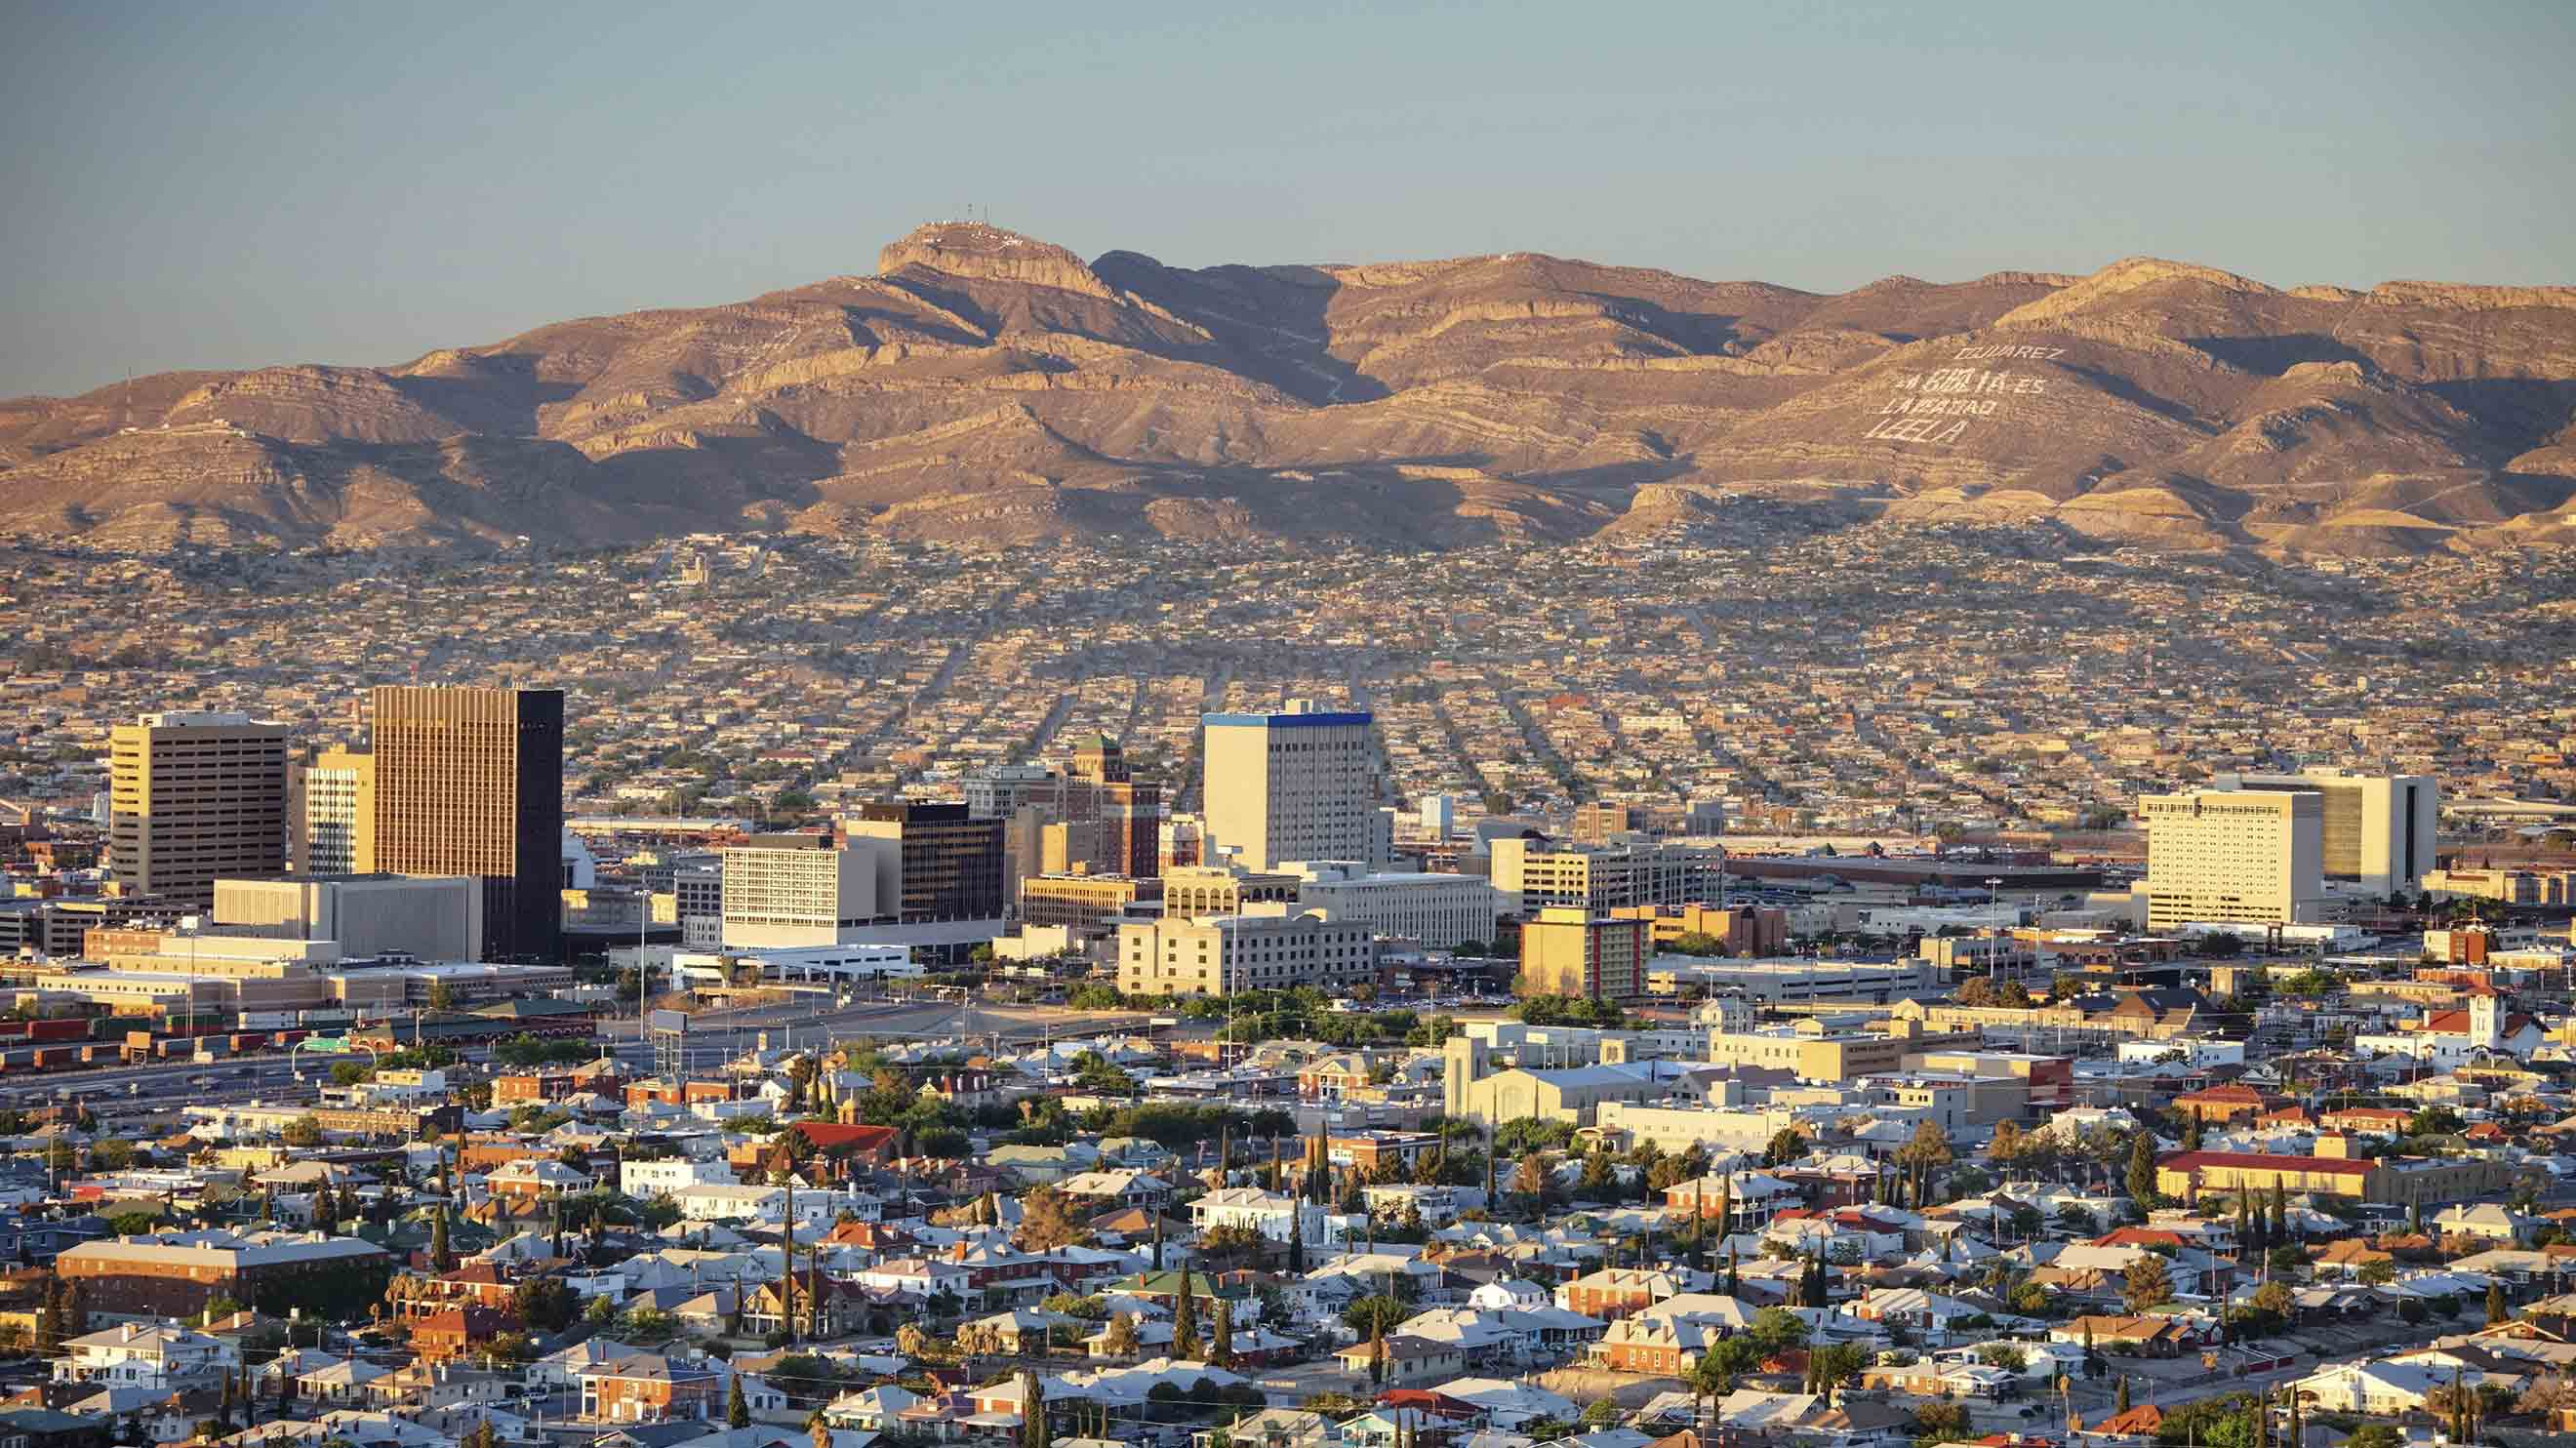 Rental Cars in Ciudad Juarez, Mexico $5: Get Cheap Rental